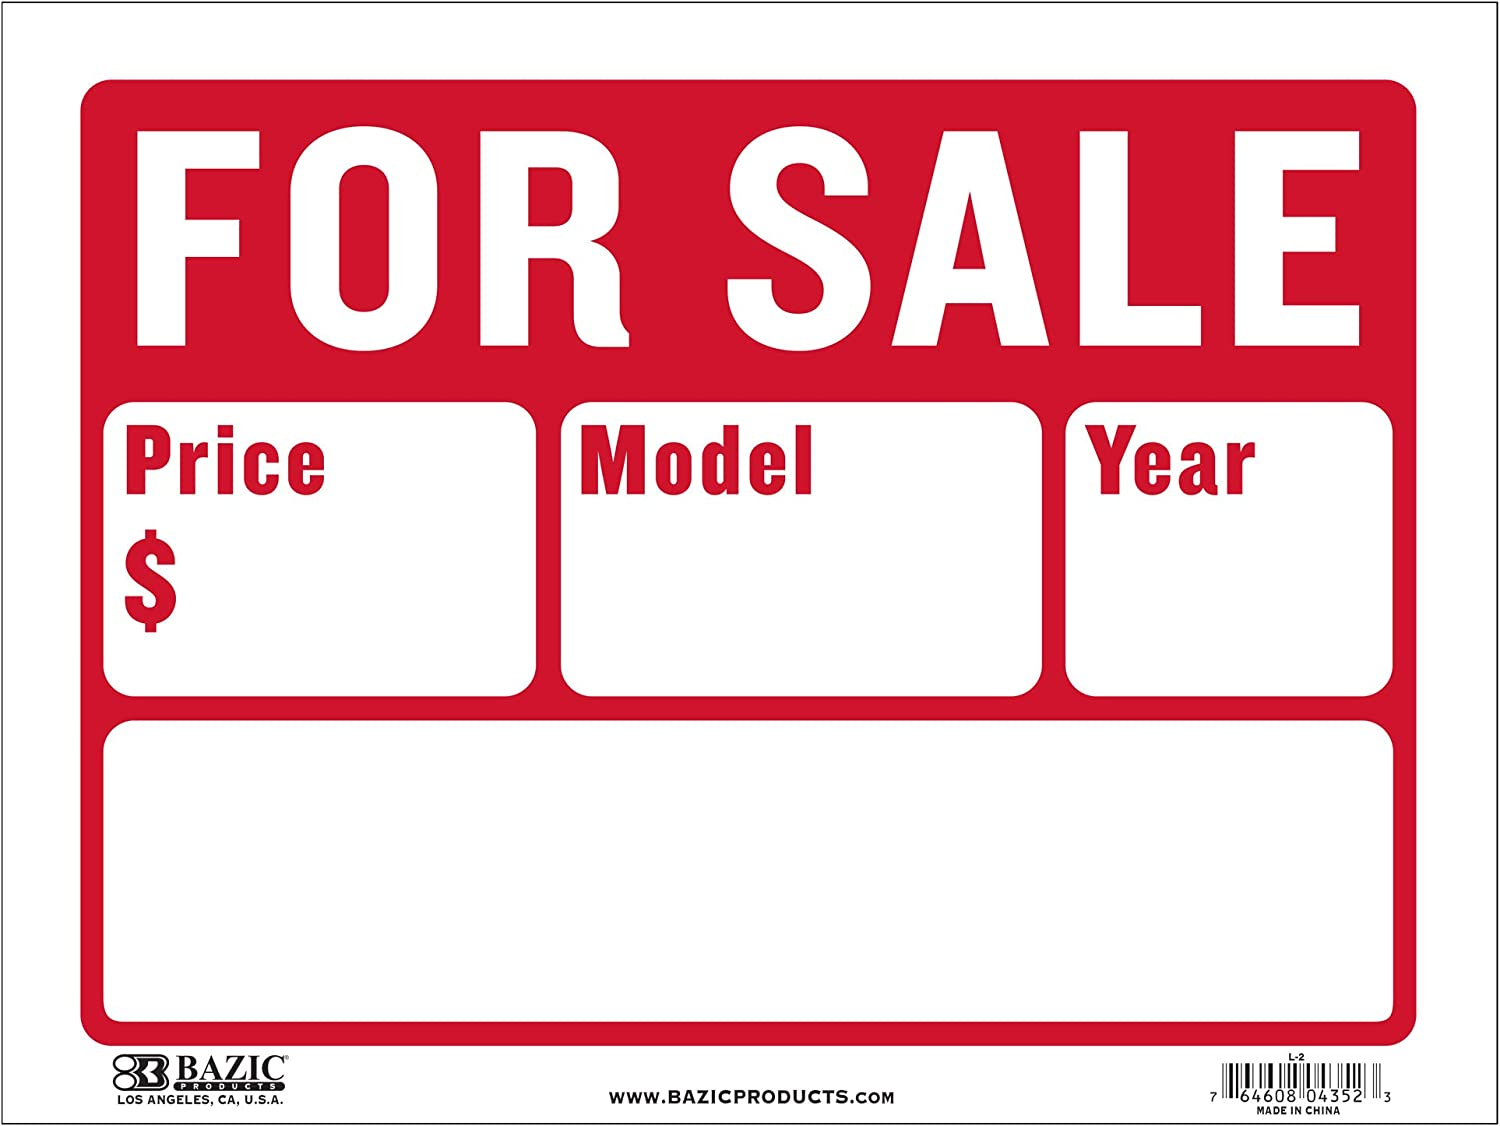 Waterproof Indoor Outdoor Advertising Signage BAZIC 12 X 16 Garage Sale Sign Wall Door Border Yard Sale for Sale Retail Store Policy Business Plastic Sign